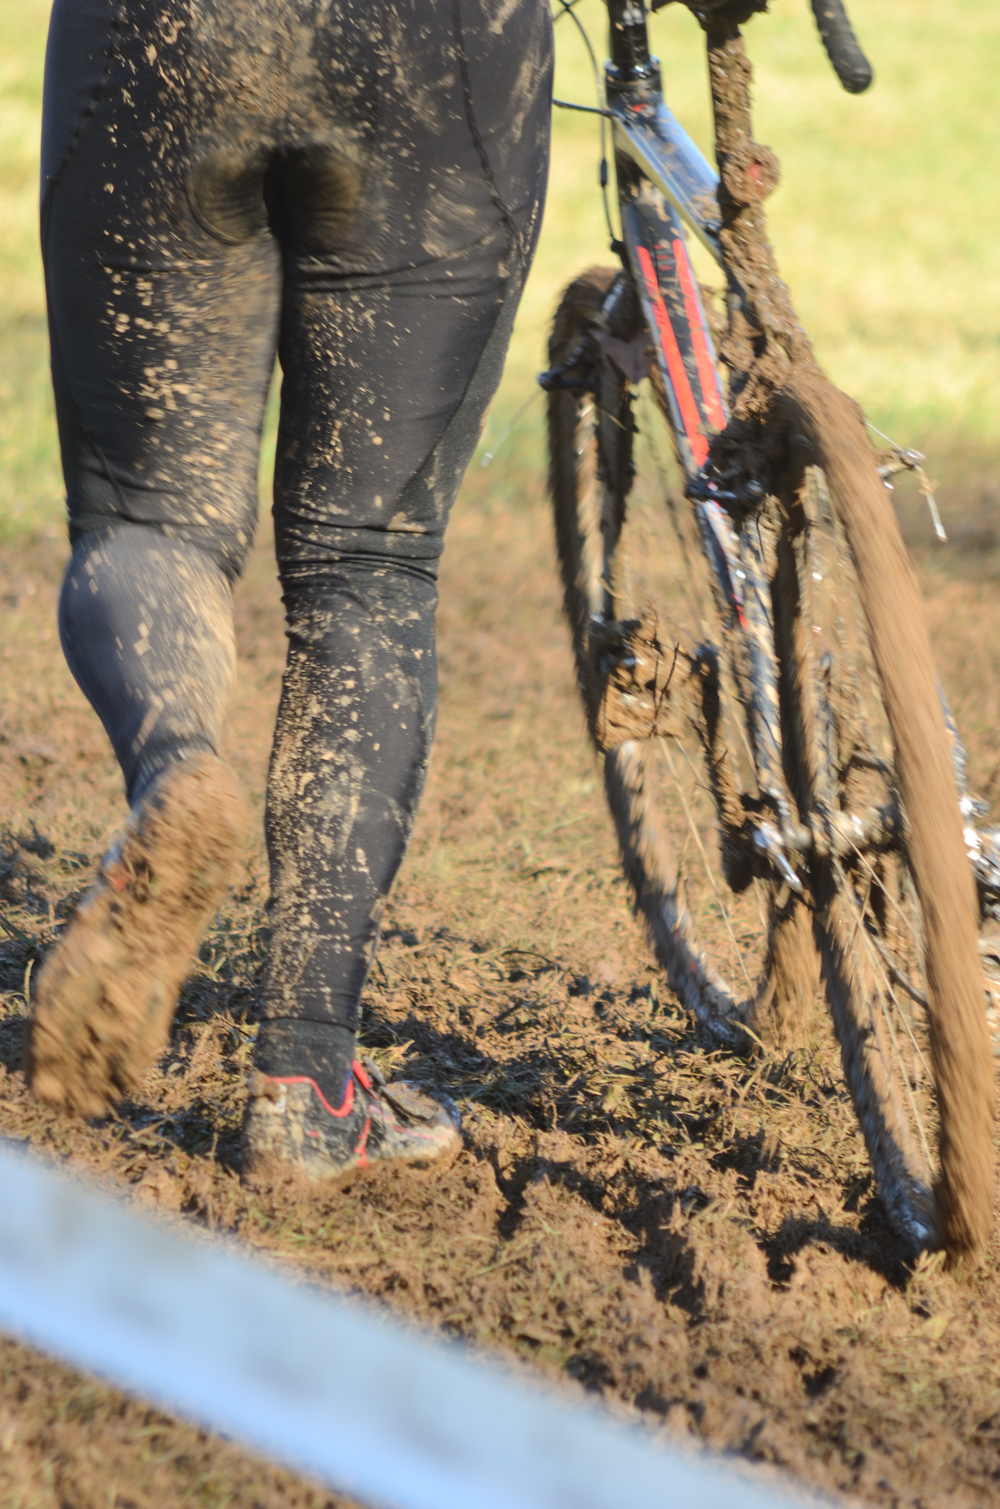 Mud saps energy, gums up the brakes and gears, and makes the bike feel like a hundred pounds.